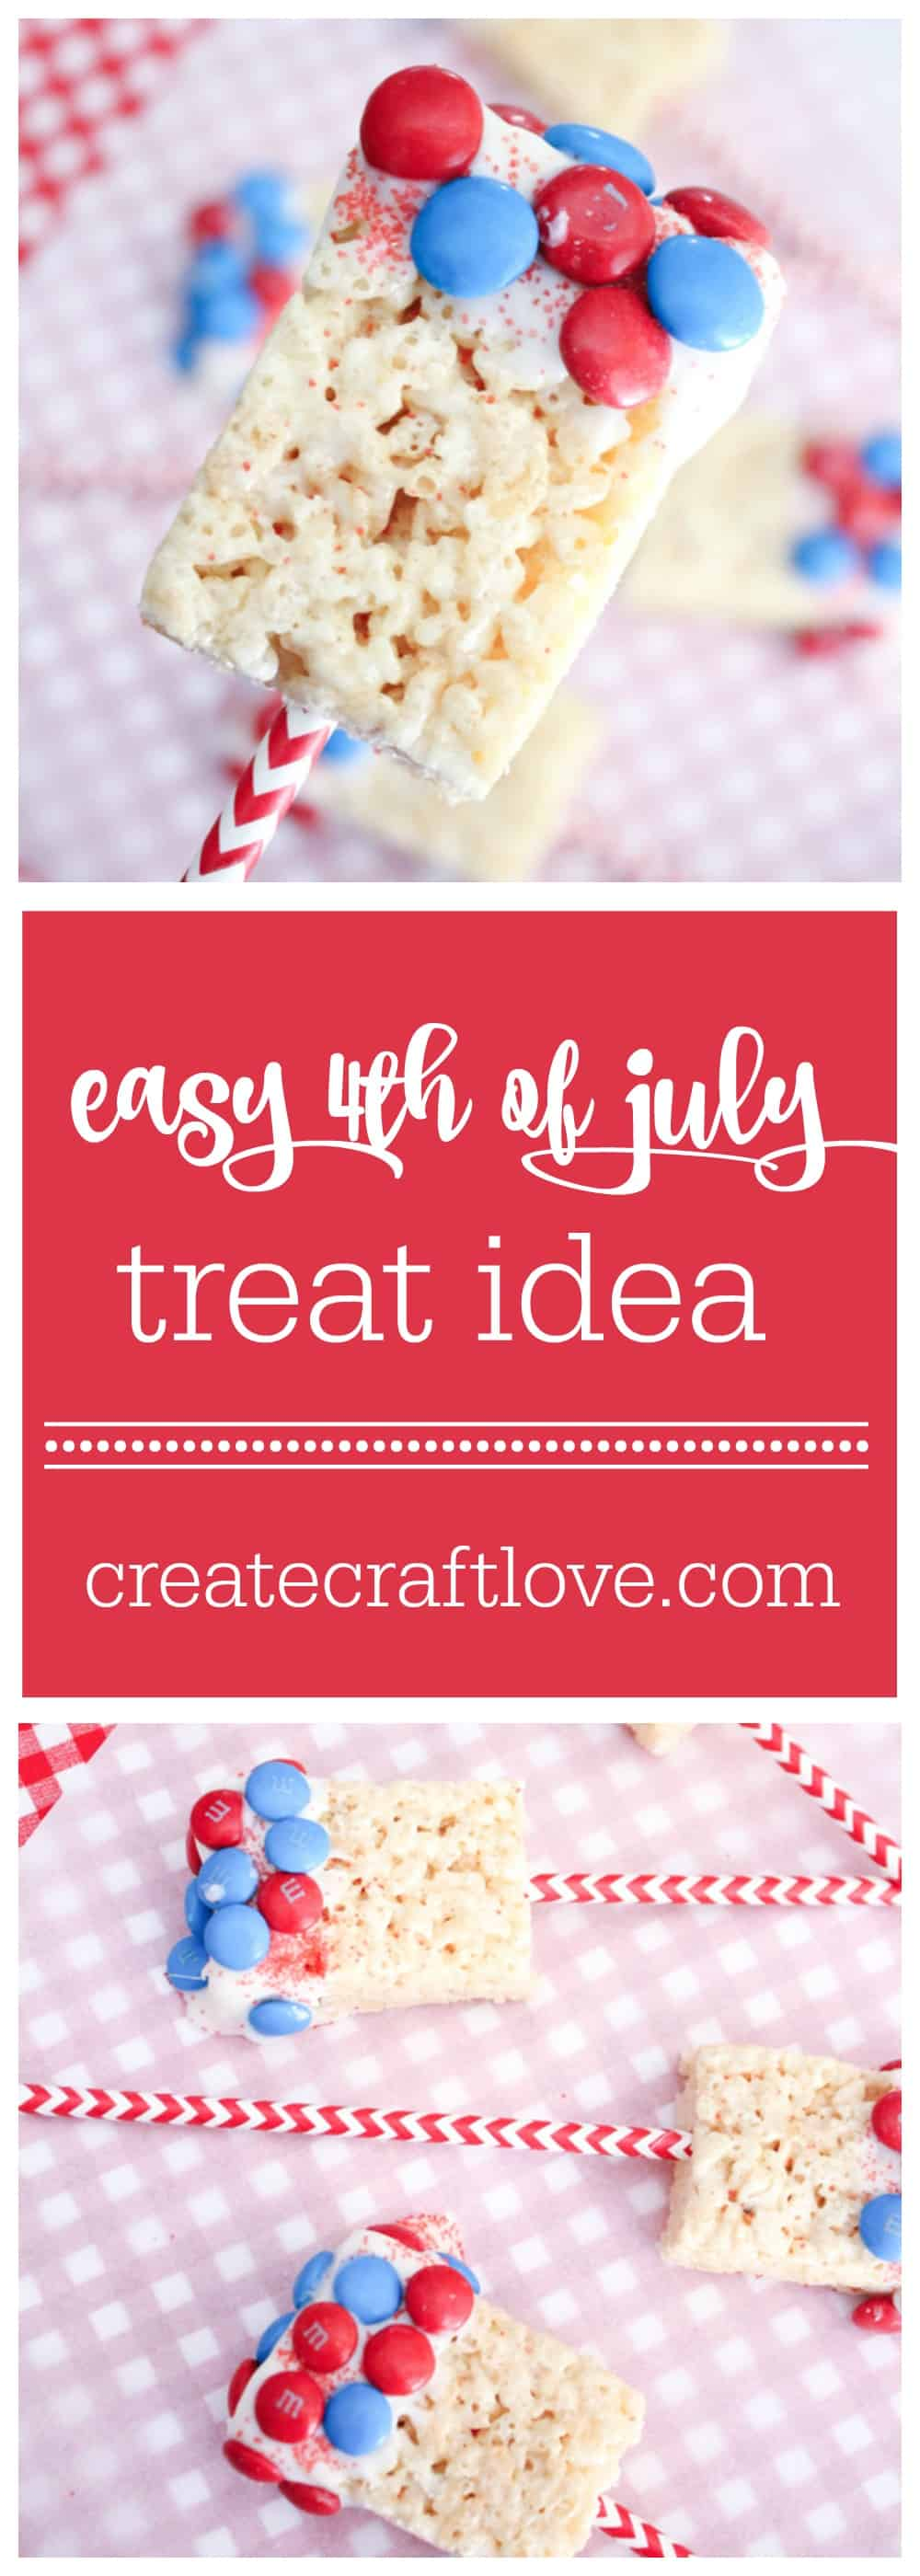 This Easy 4th of July Treat will take you 5 minutes to make! via createcraftlove.com